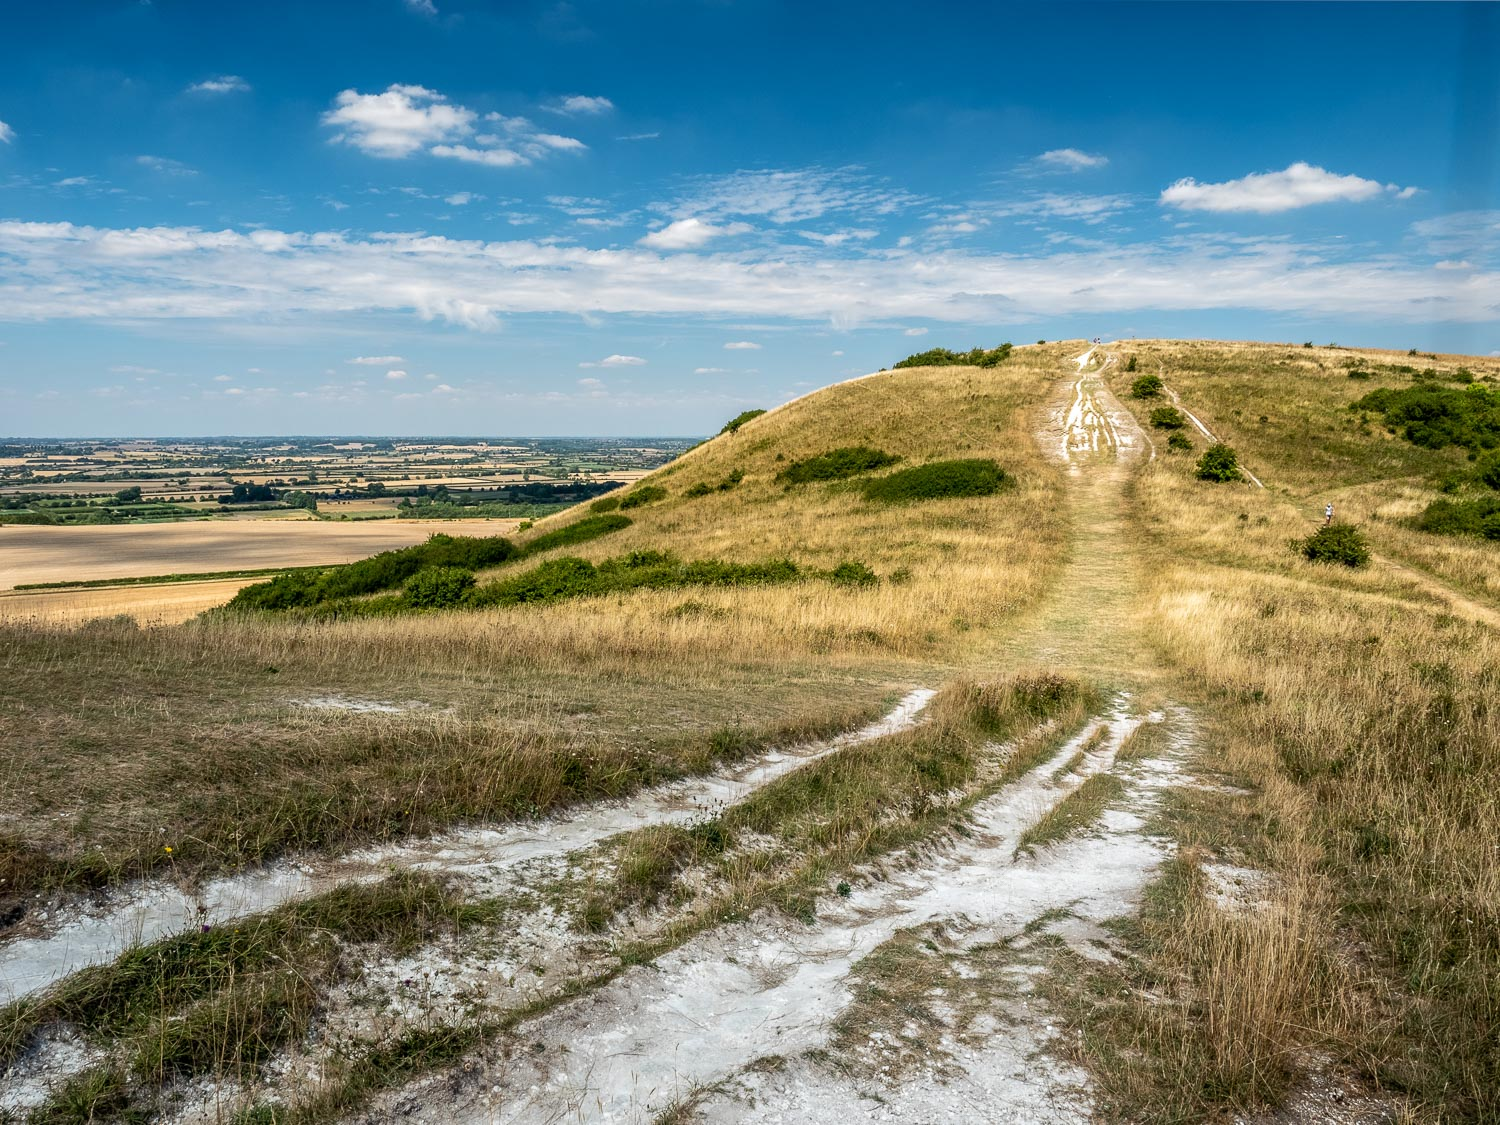 A Landscape Photograph Of The Ivinghoe Beacon Viewpoint On A Sunny Day, Near Ivinghoe In The Chilterns.